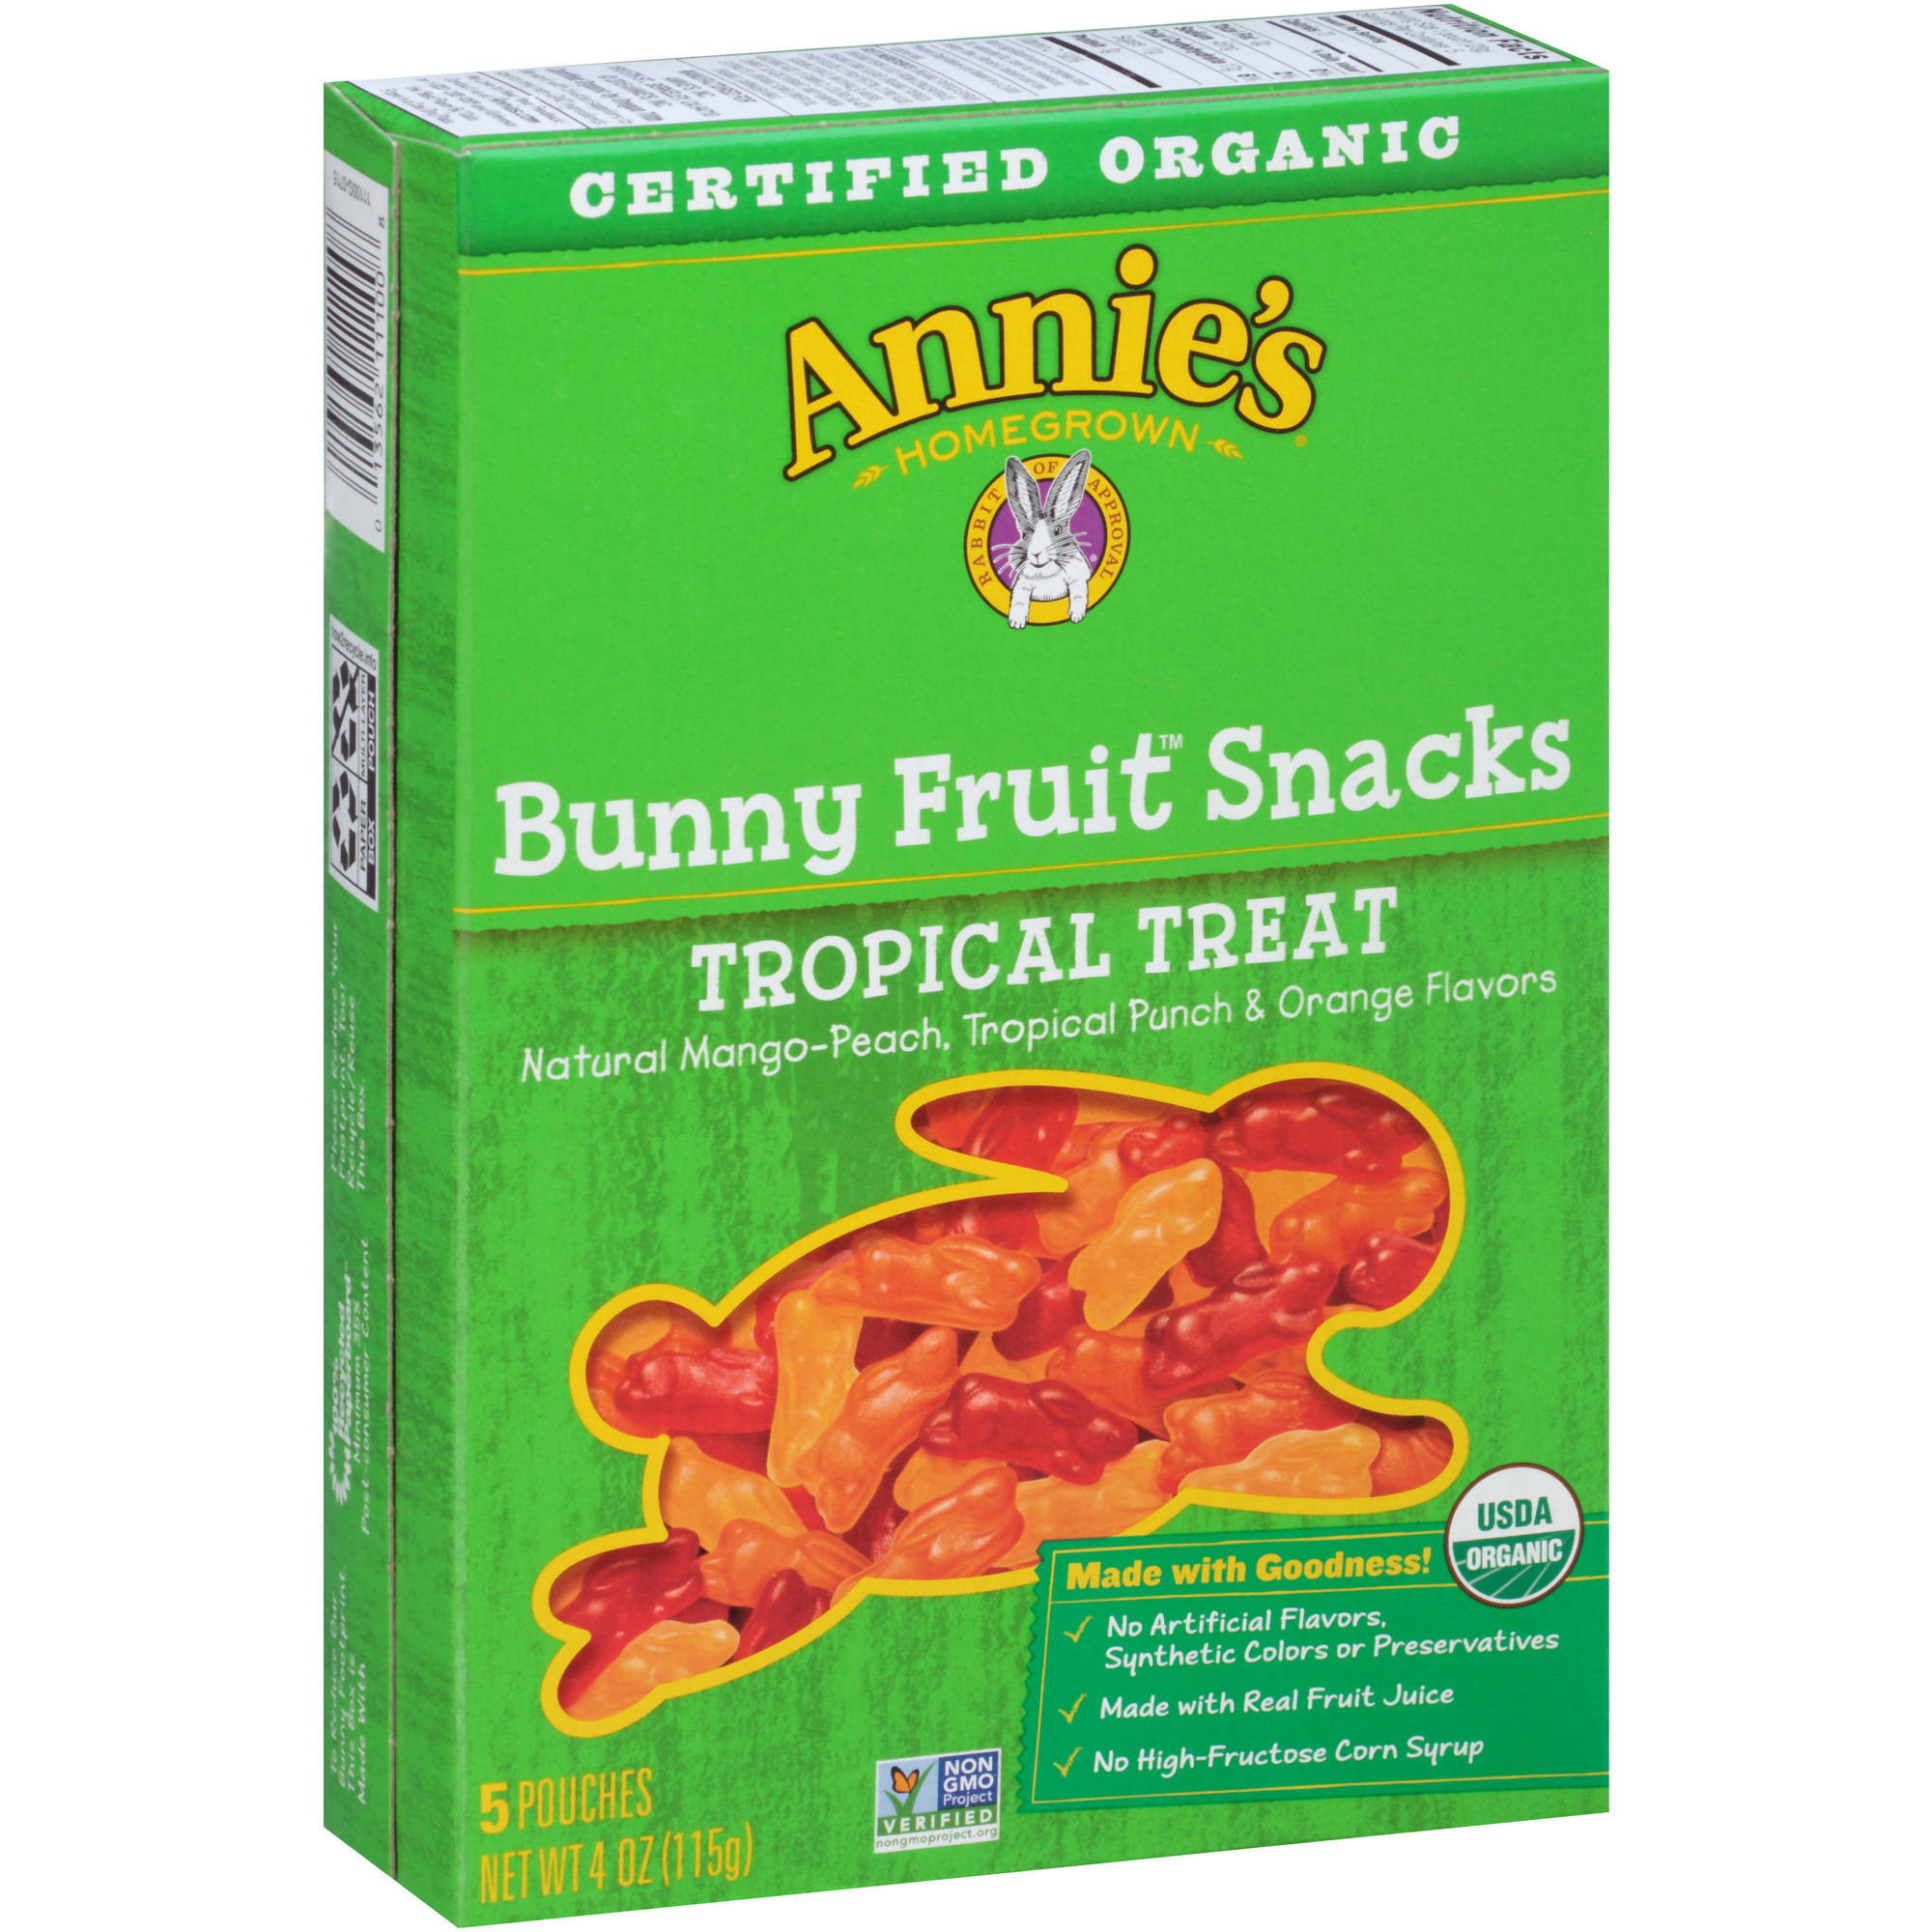 Annie's Tropical Treat Organic Bunny Fruit Snacks, 0.8 oz, 5 count